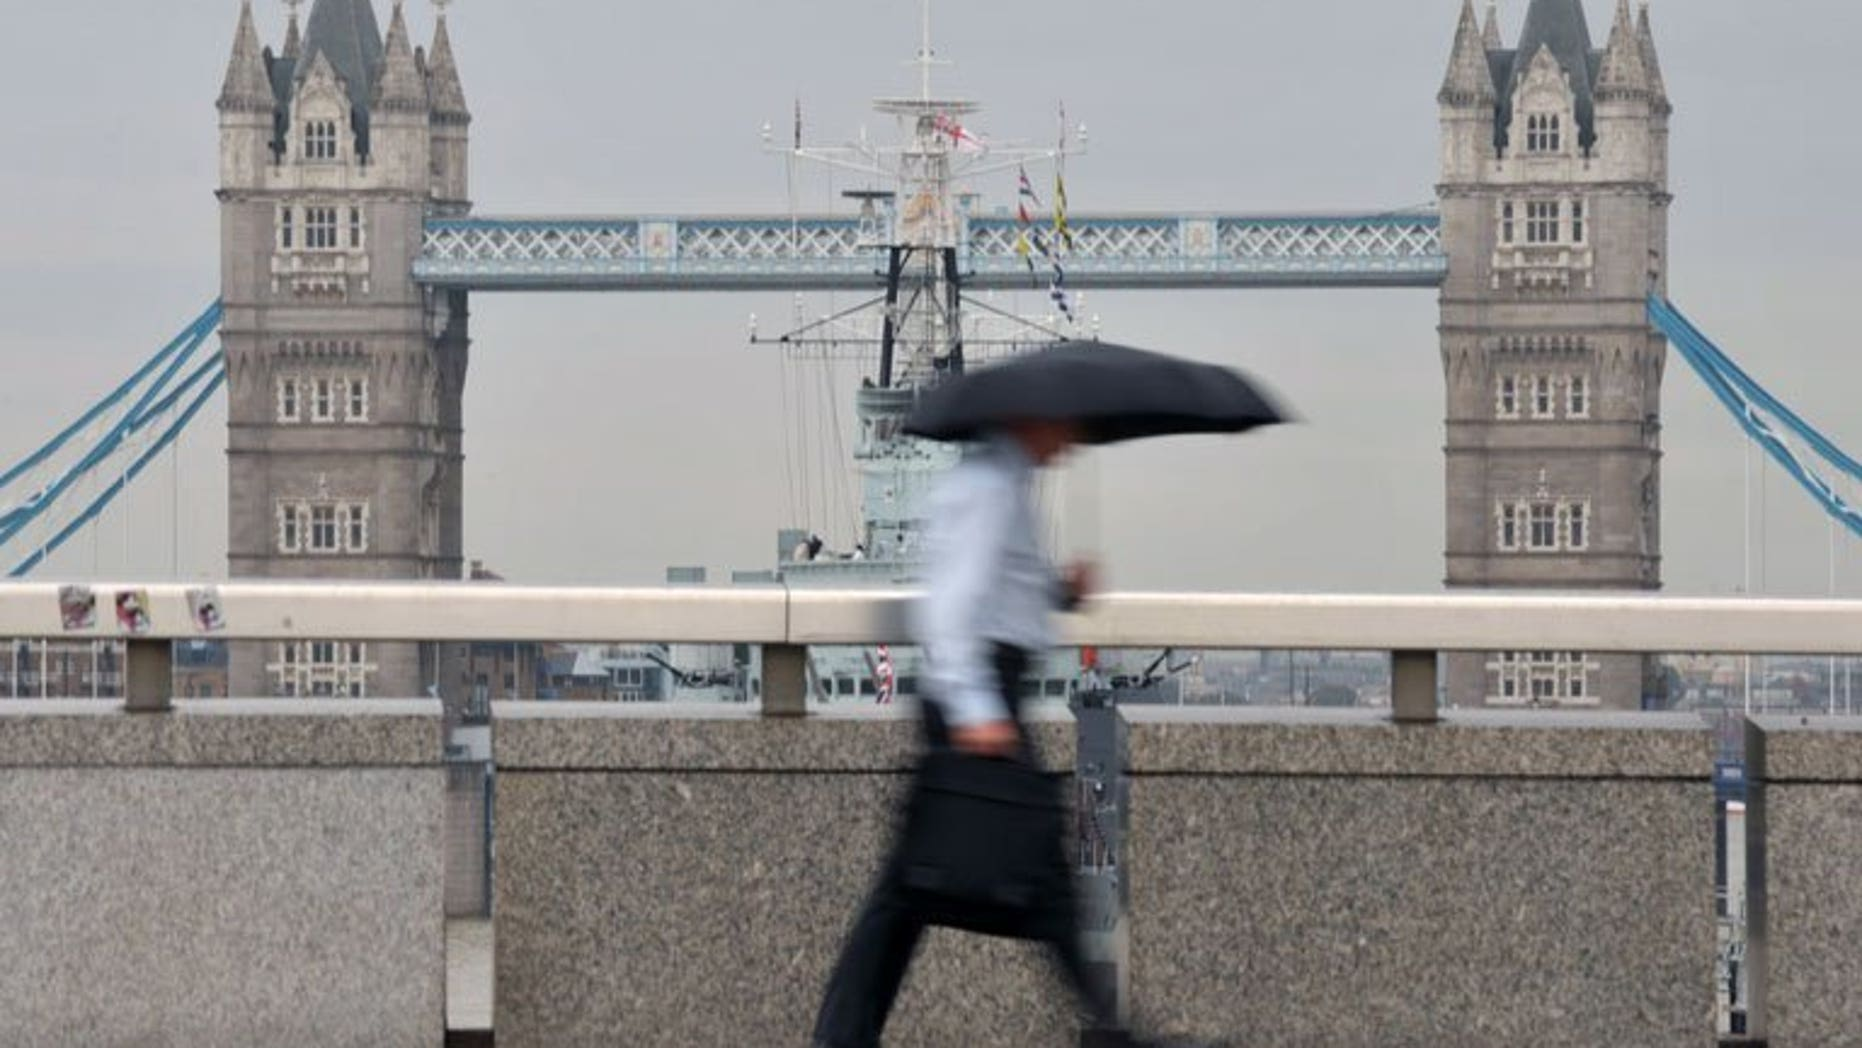 A city worker walks over London Bridge in central London. London shares closed lower on Friday as markets tumbled on weak US nonfarm payroll employment figures, with sharp drops in William Hill and Smiths Industries accentuating the fall, dealers said.